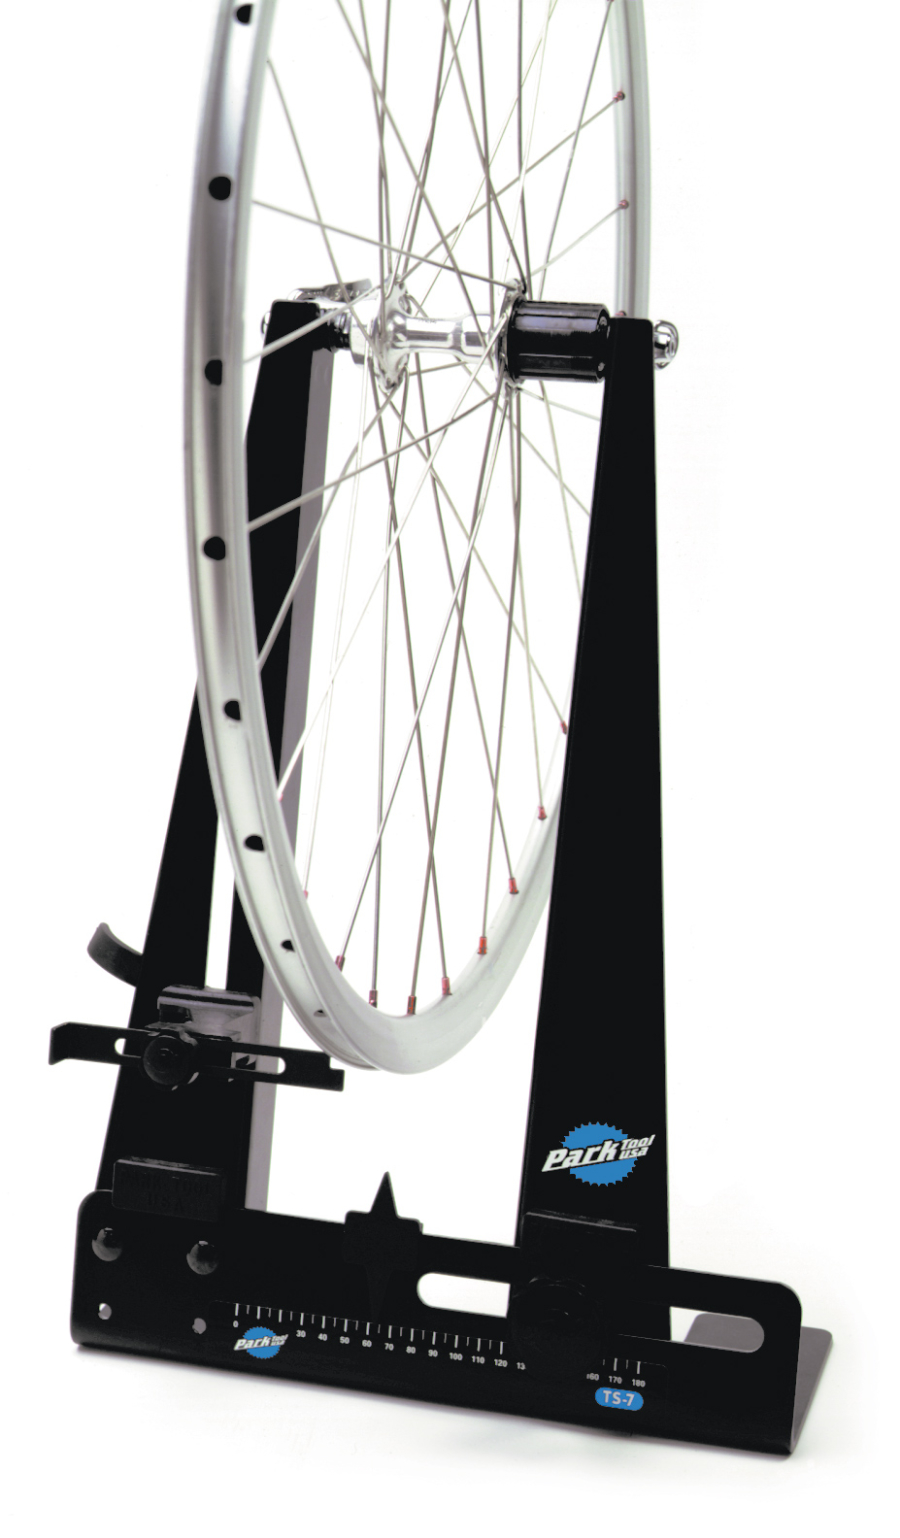 The Park Tool TS-7 Home Mechanic Wheel Truing Stand holding wheel, enlarged